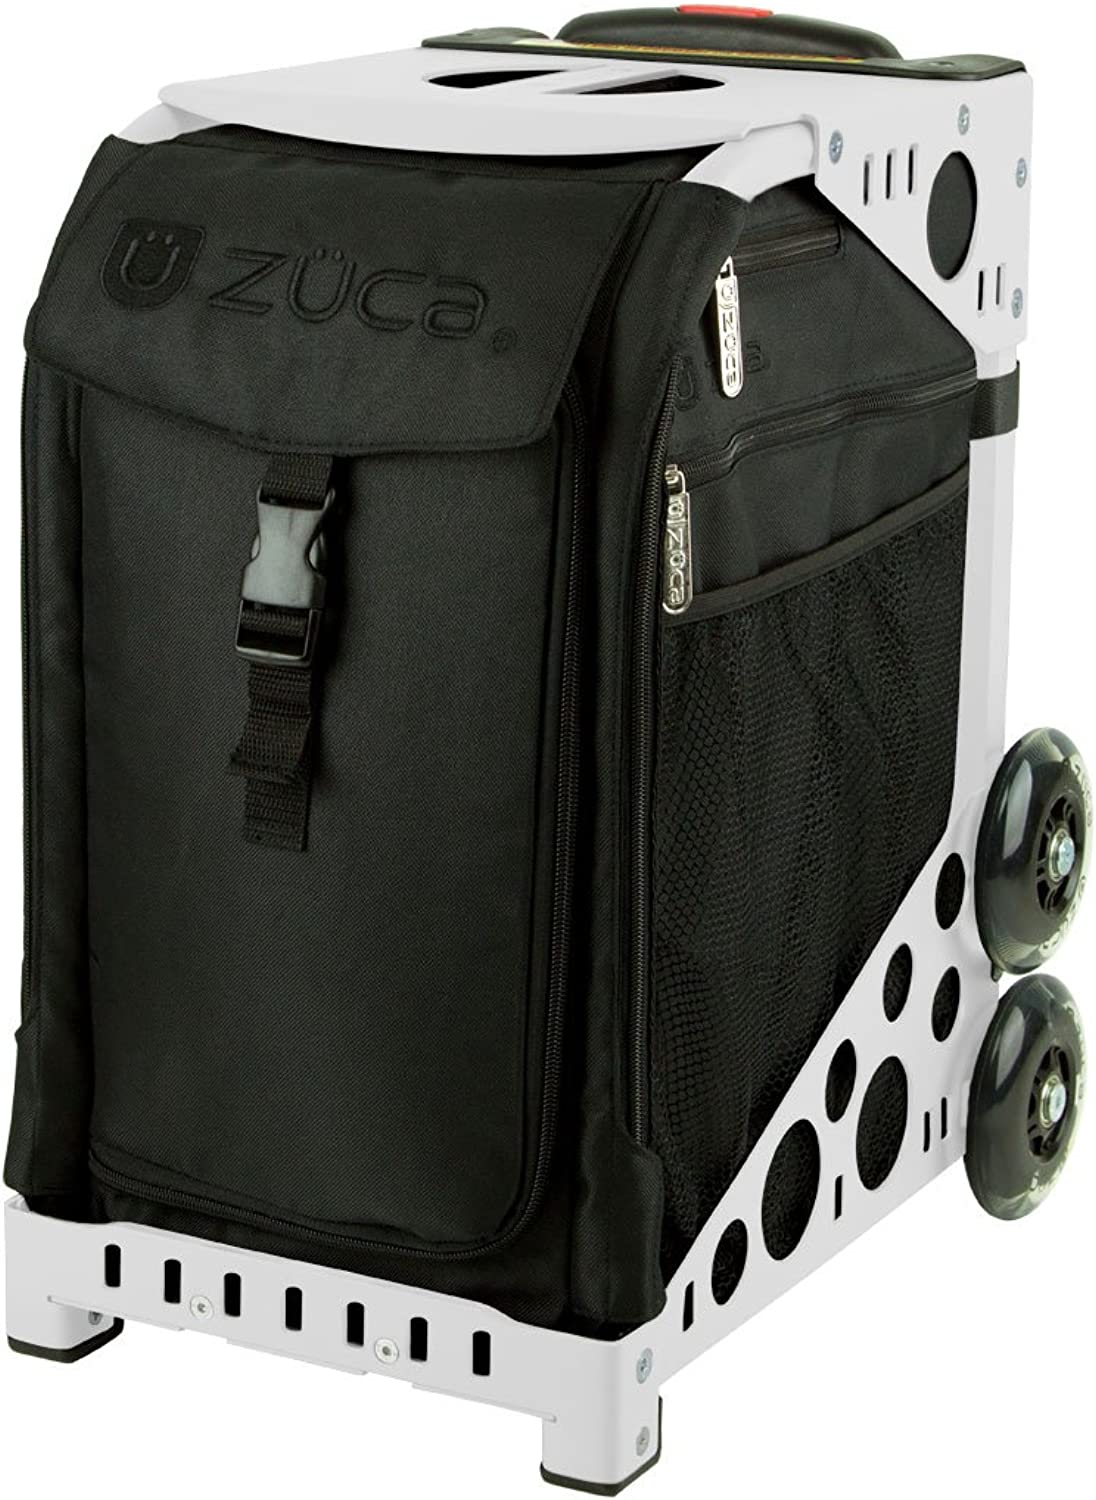 ZUCA Bag Stealth Insert Only